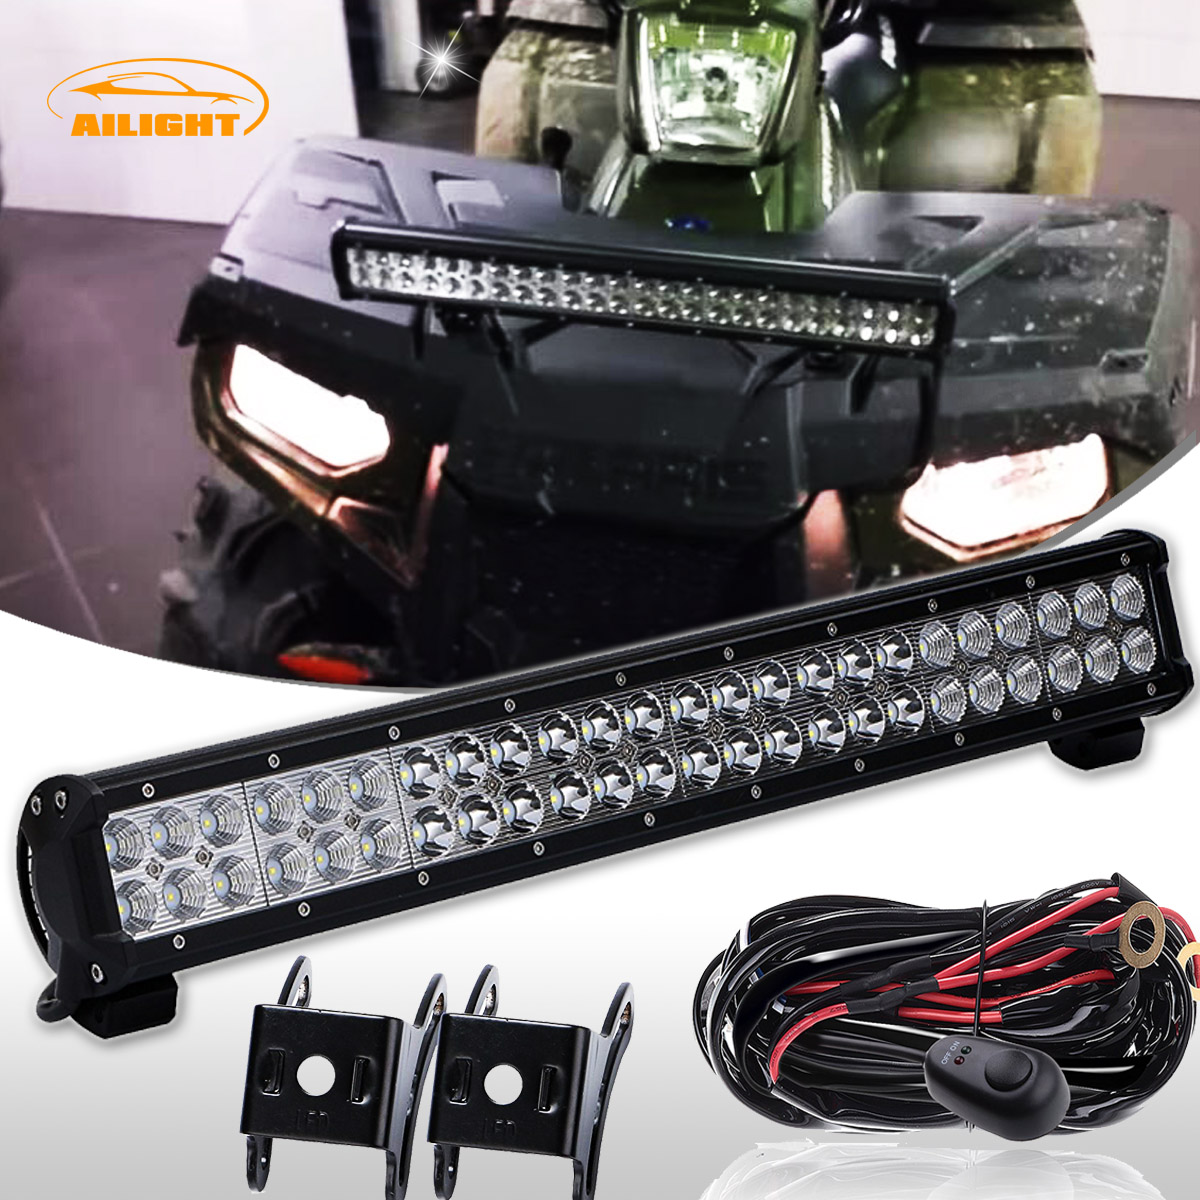 2012 Polaris Sportsman Forest Tractor 500 23inch 144w Led Light Bar Wiring Diagram For Kit